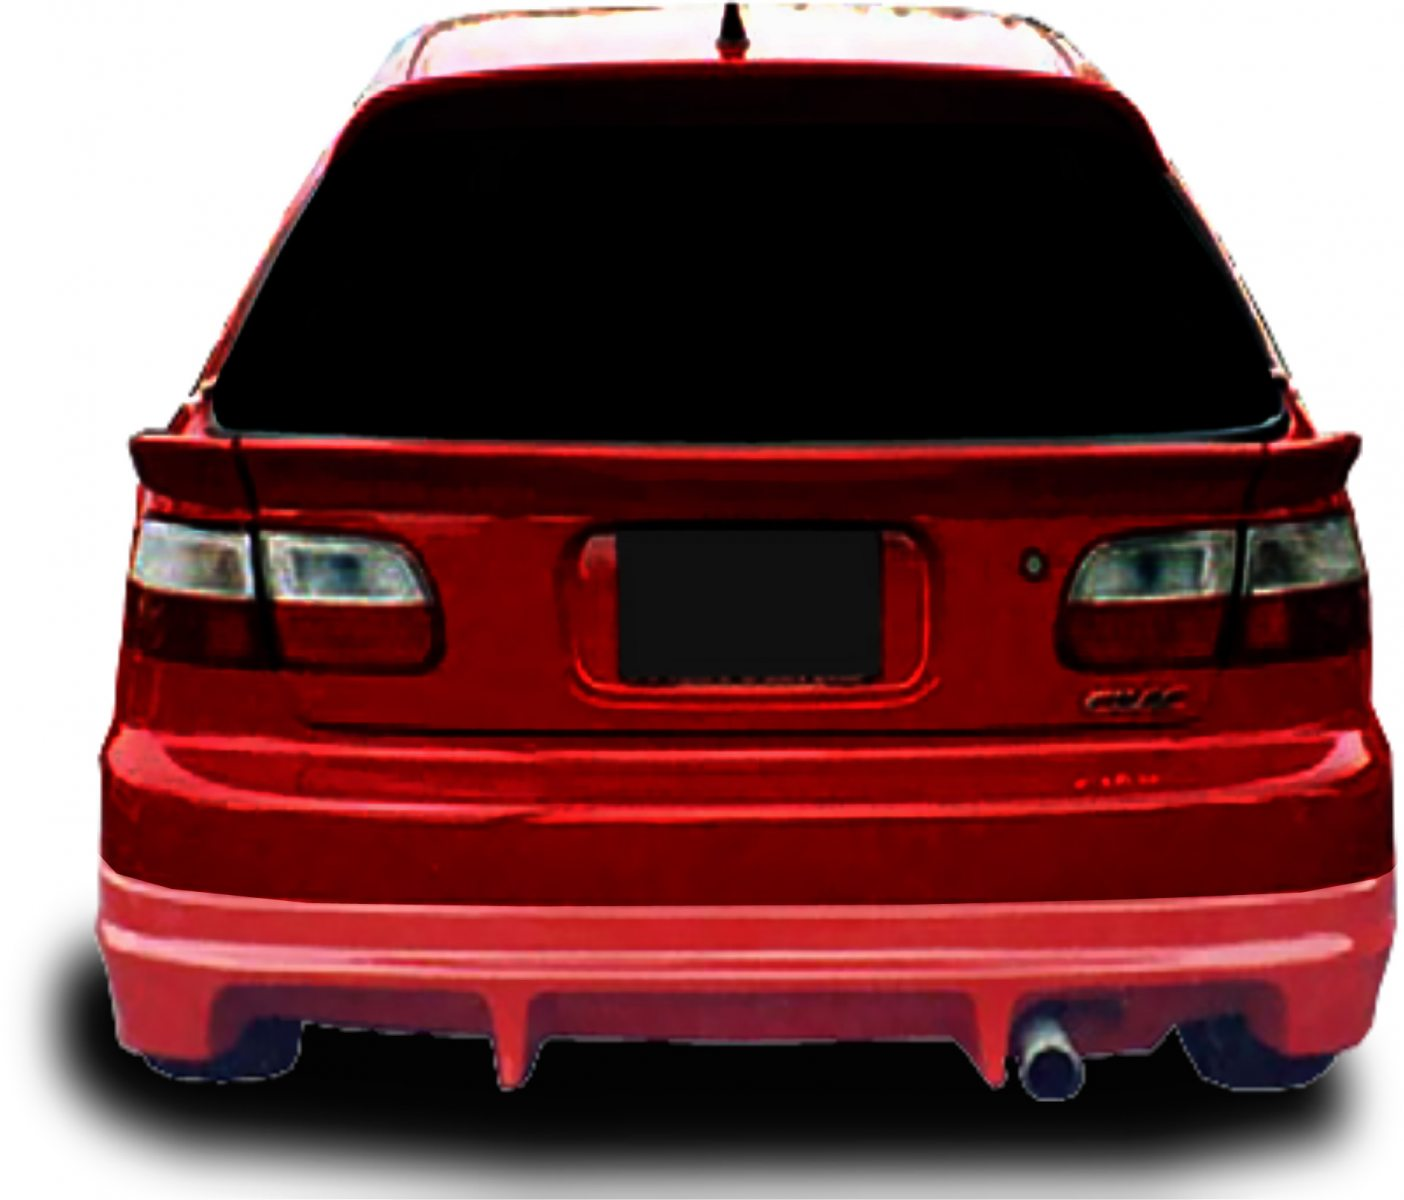 Honda-Civic-96-Sport-Tras-SPA053